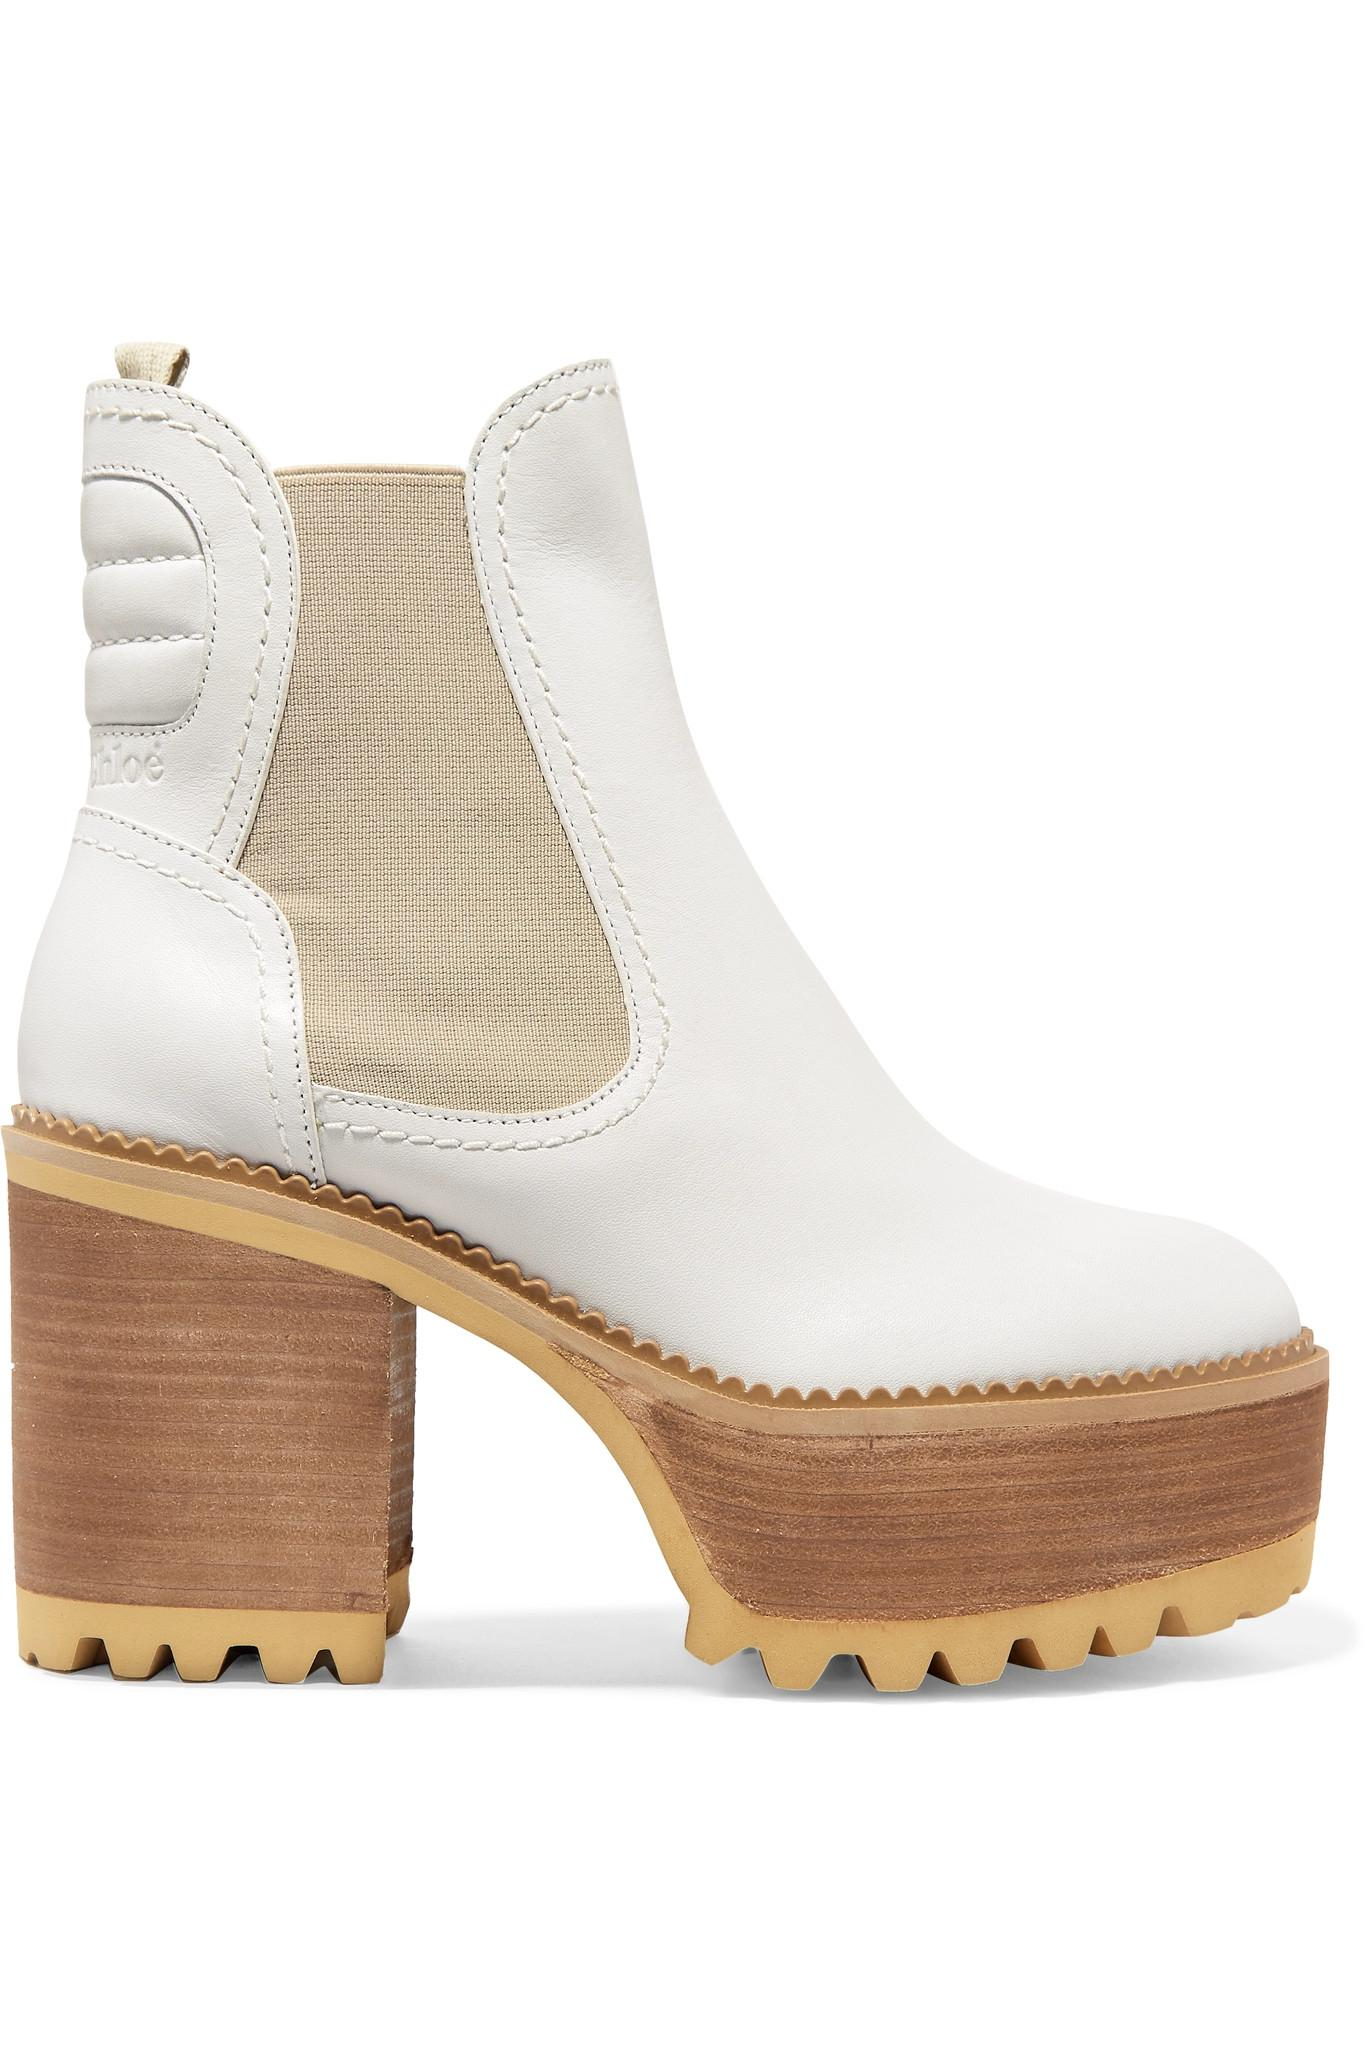 a9ece732b05f39 Lyst - See By Chloé Erika Ankle Boots Aus Leder Mit Plateau in Weiß